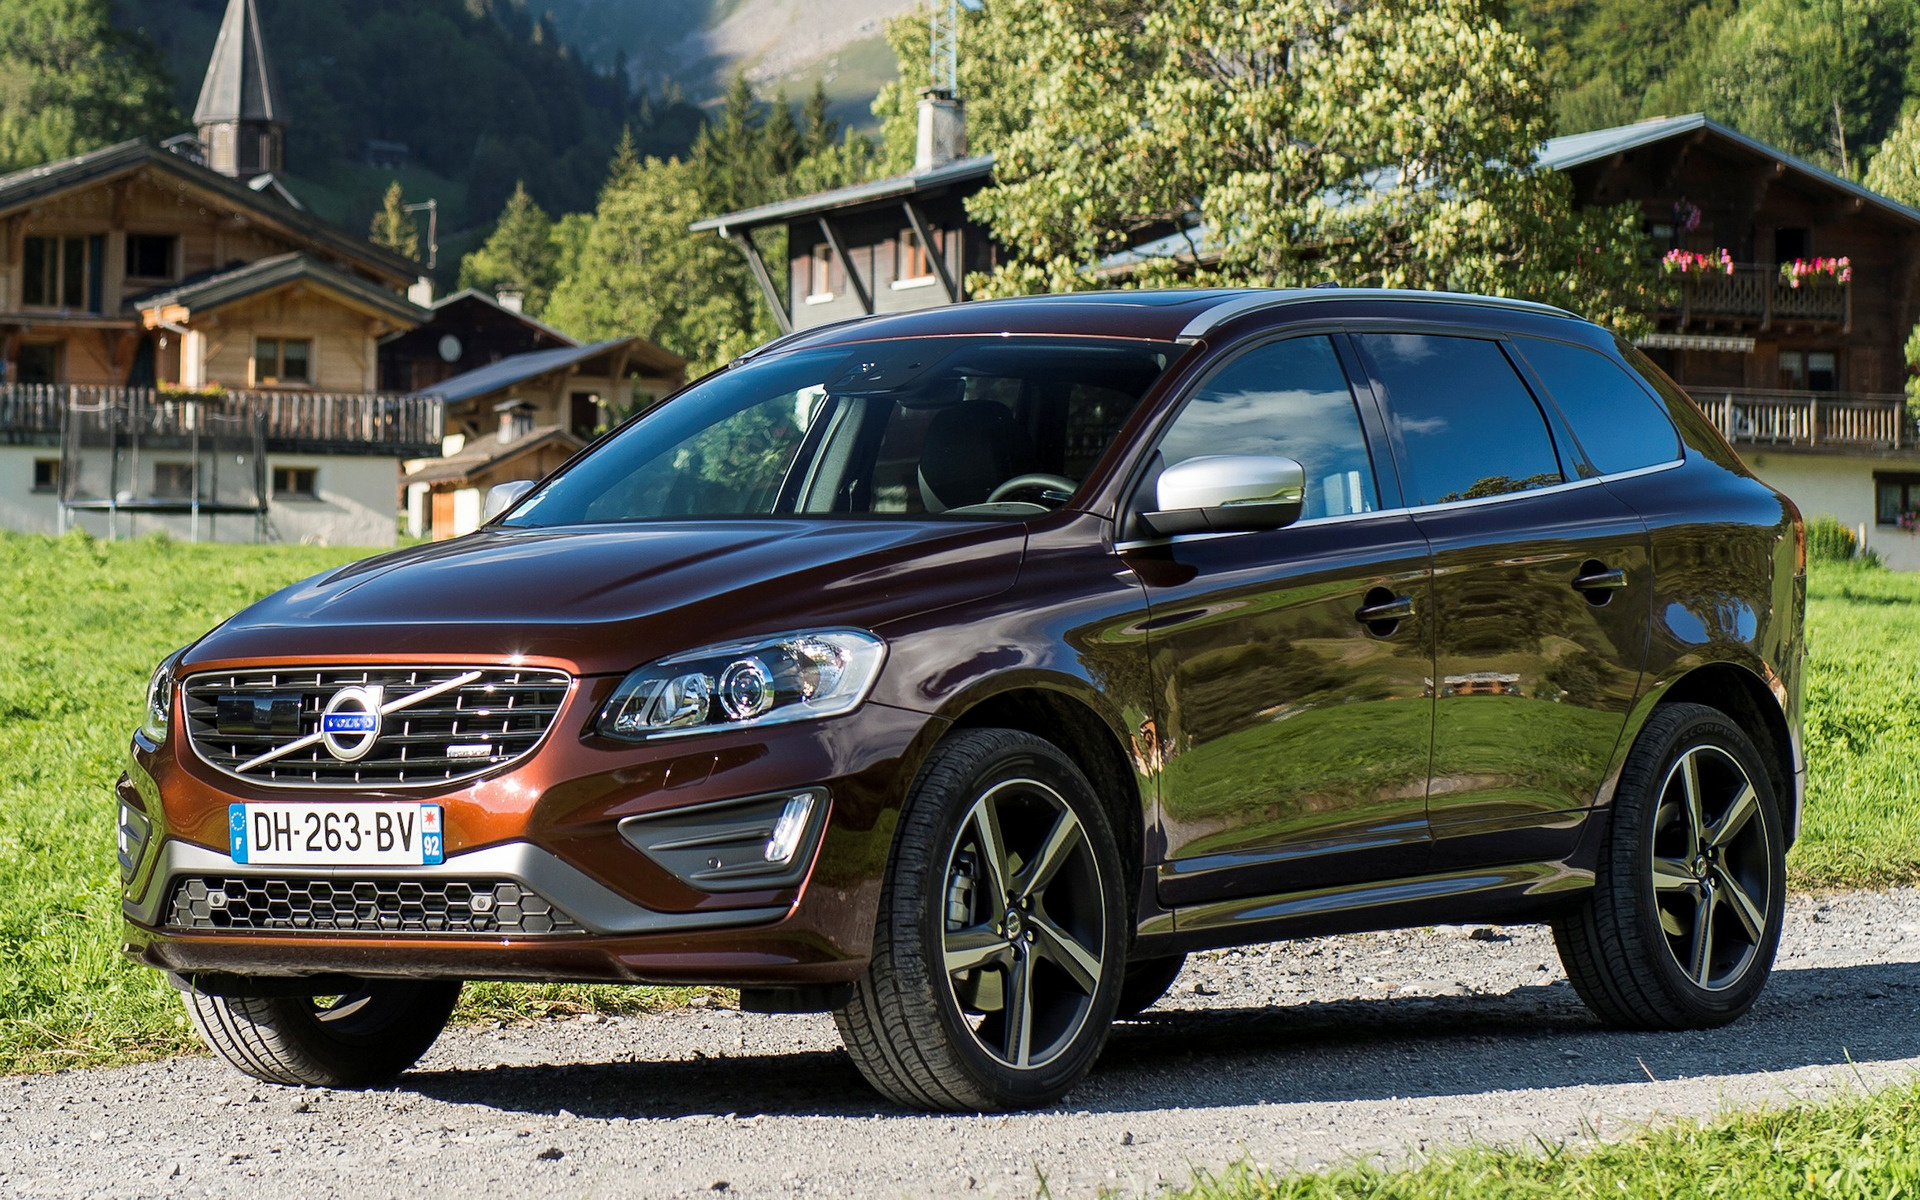 volvo xc60 r design 2013 wallpapers and hd images car. Black Bedroom Furniture Sets. Home Design Ideas